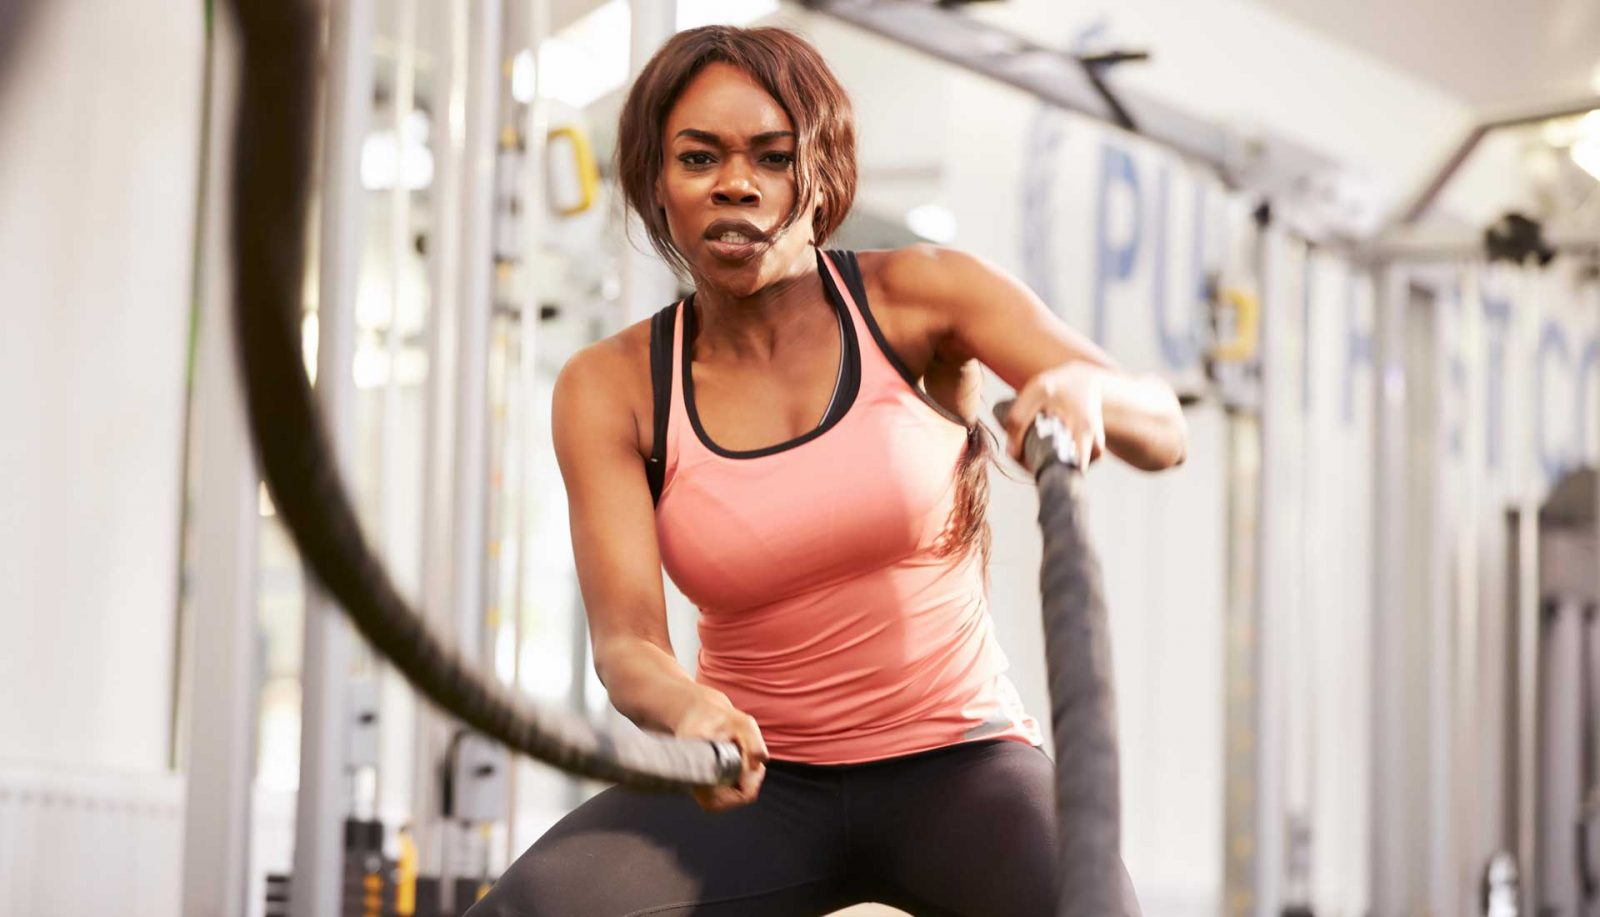 Black woman sweating in the gym exercising with battle ropes